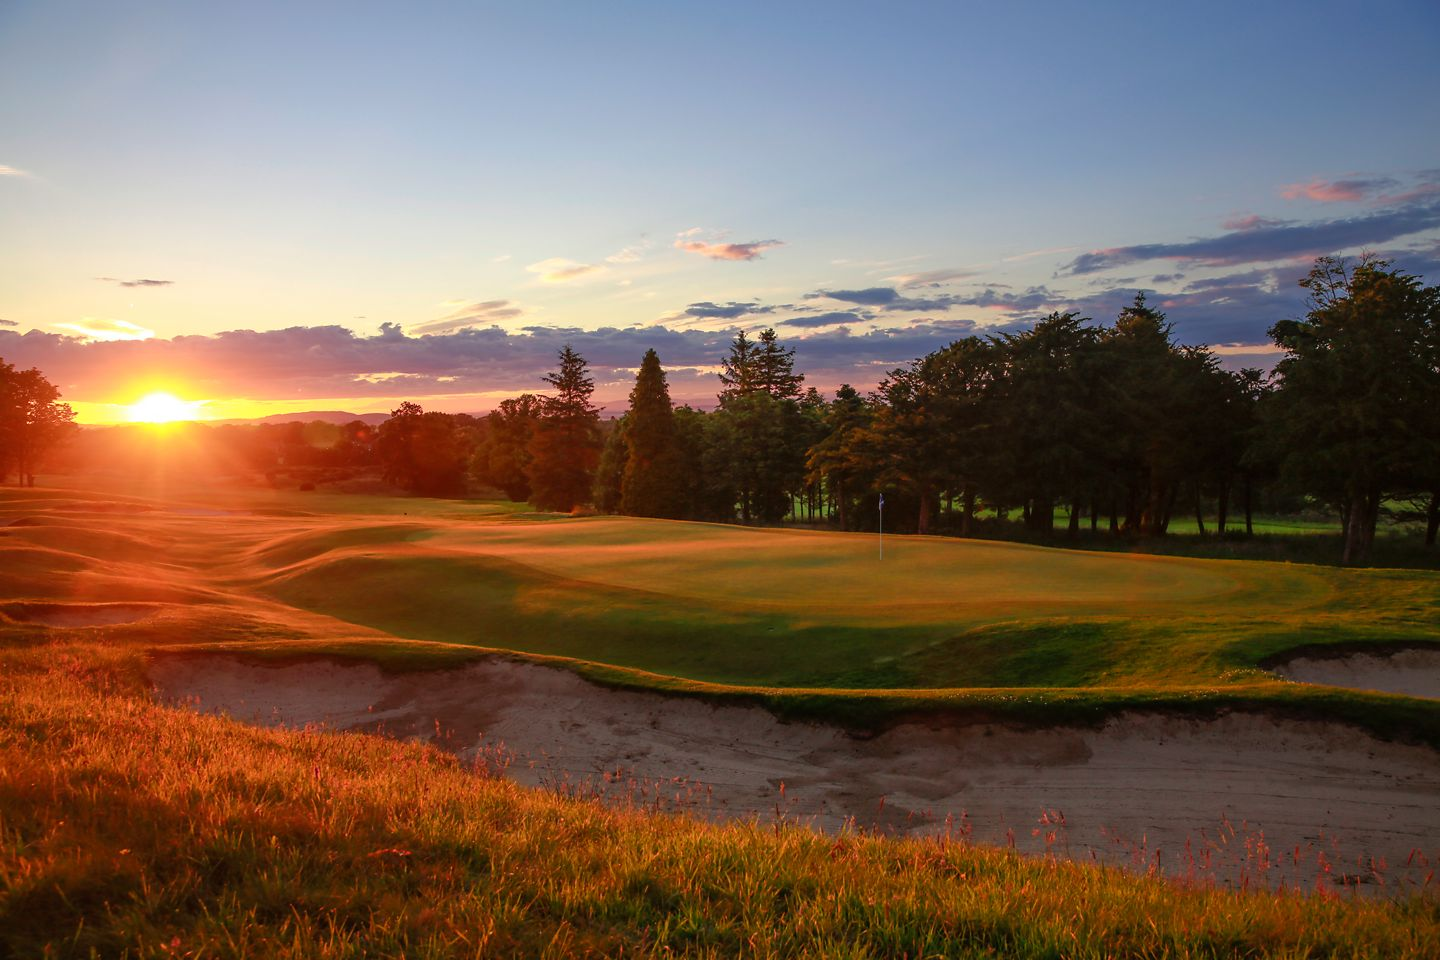 No. 9 Craigtoun. Sunset on the 9th green at The Duke's golf course.